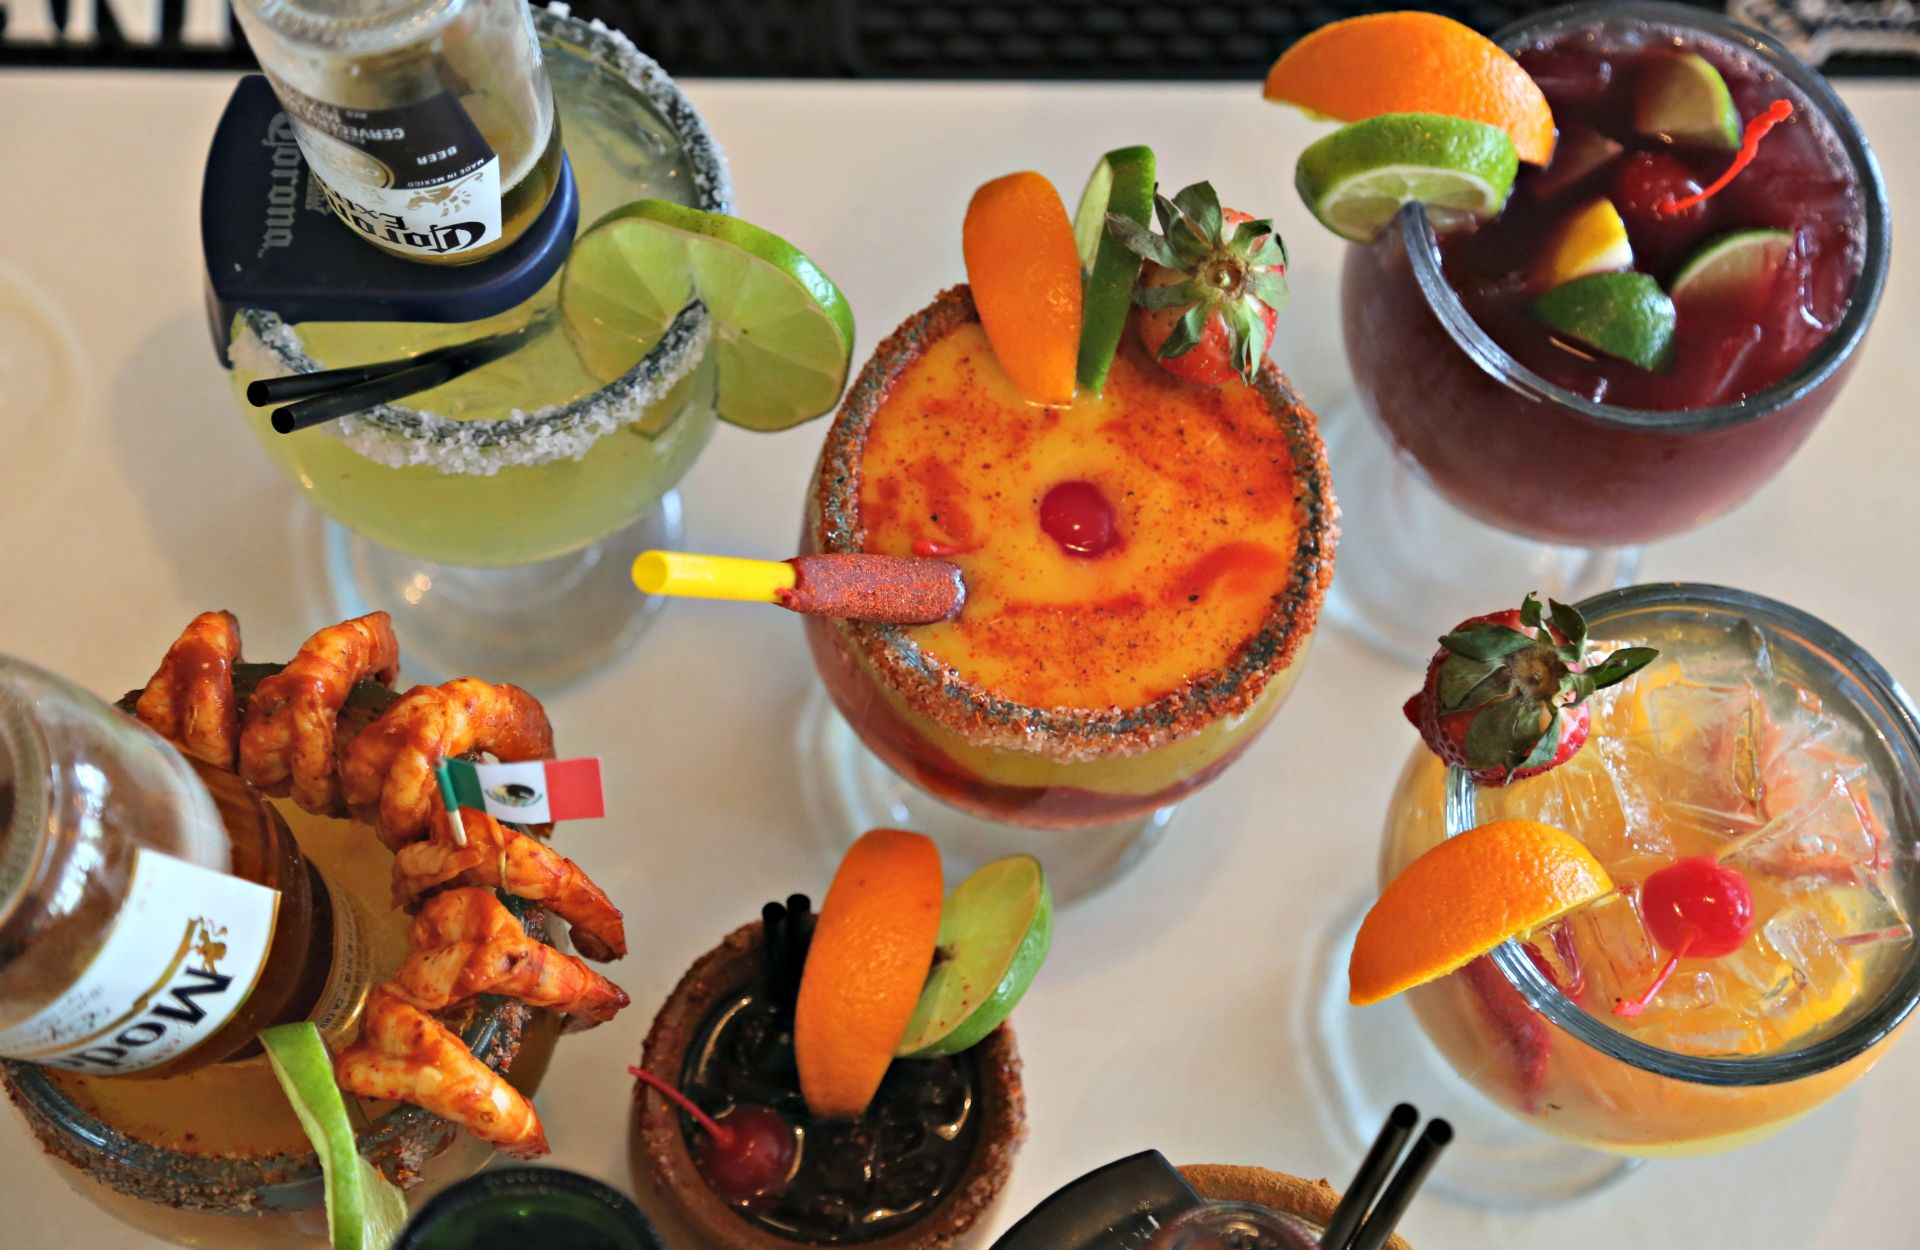 Top-down view of assorted cocktails